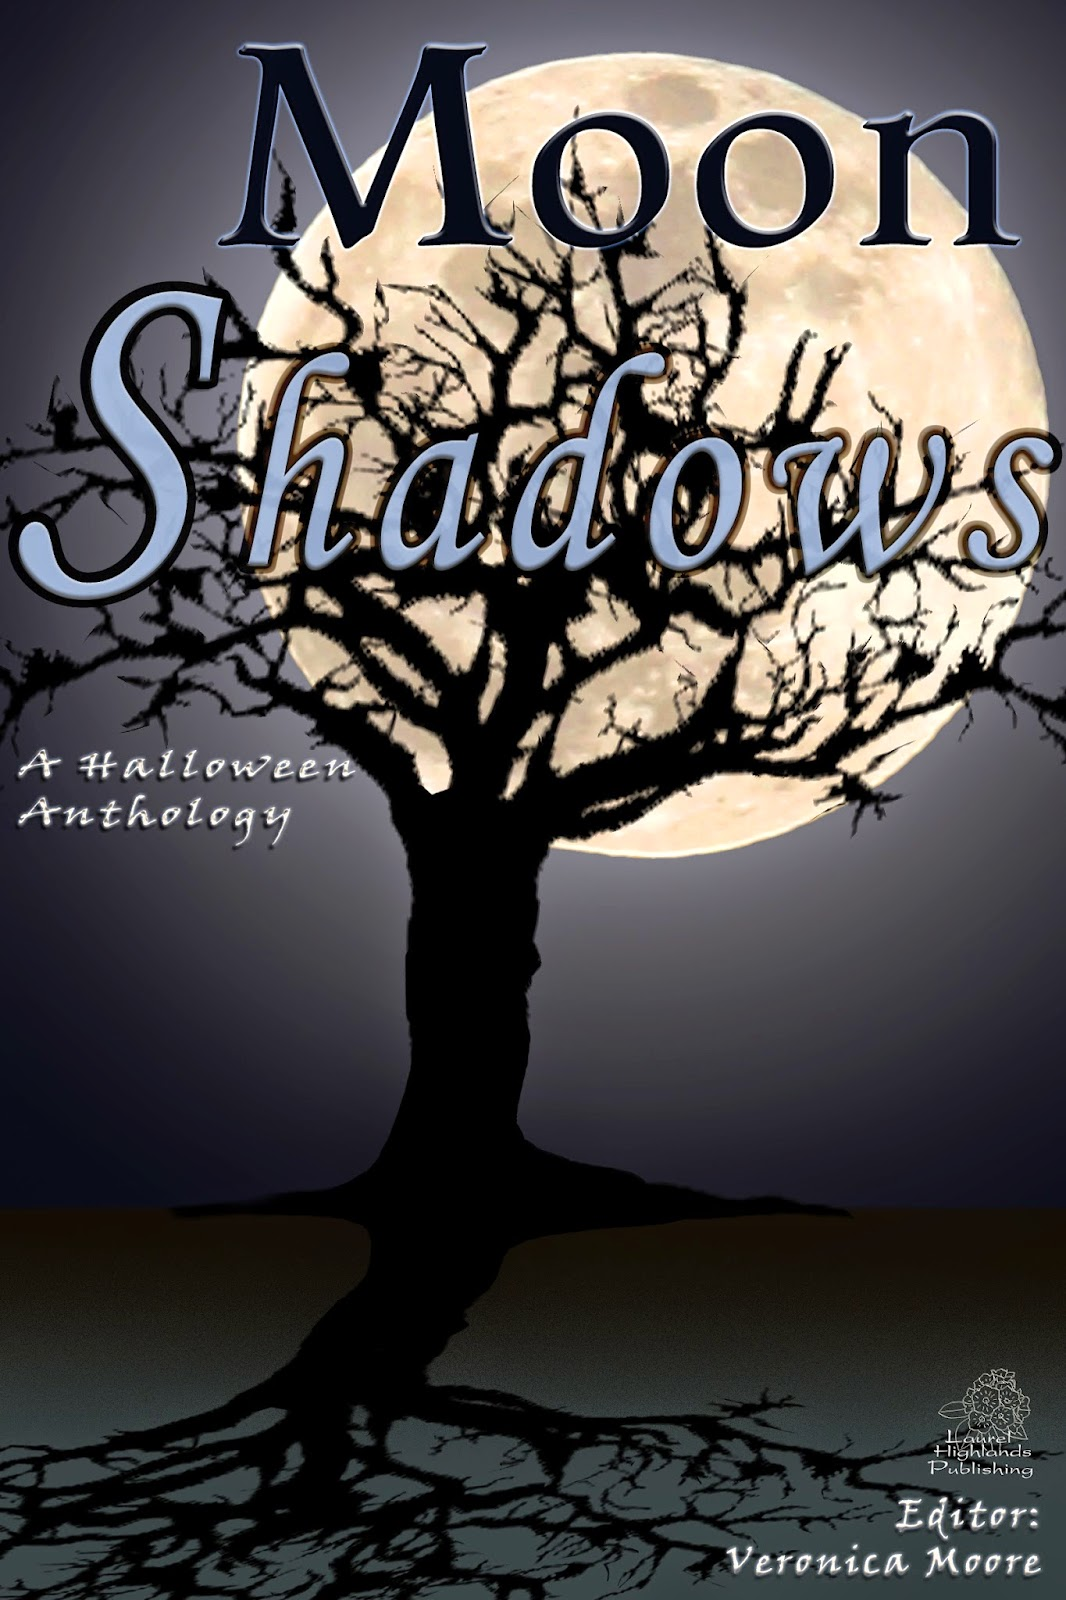 The Hunt by IE Castellano in Moon Shadows